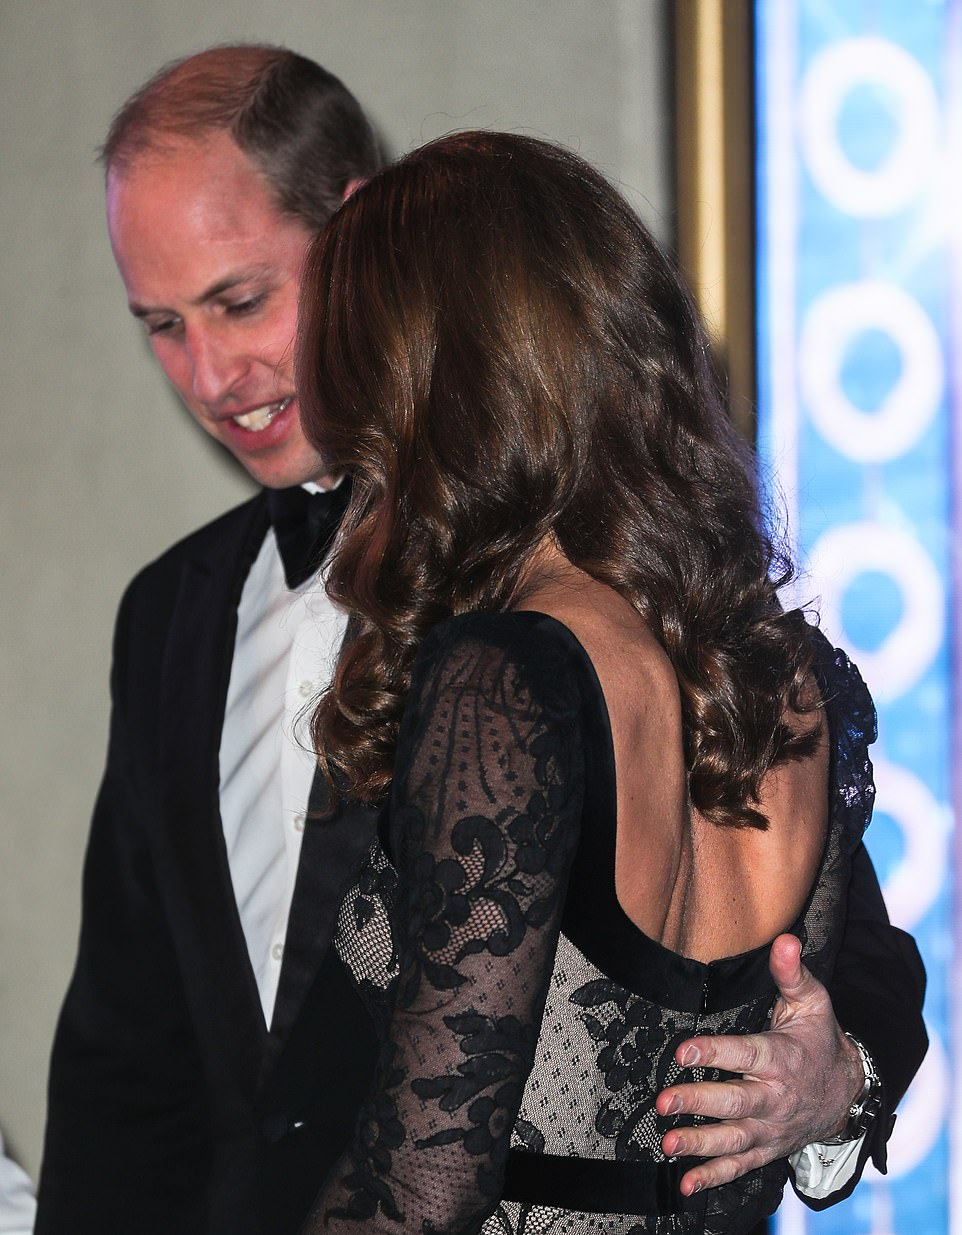 Prince William placed an affectionate hand on his wife's back as the couple entered the theatre for the performance tonight